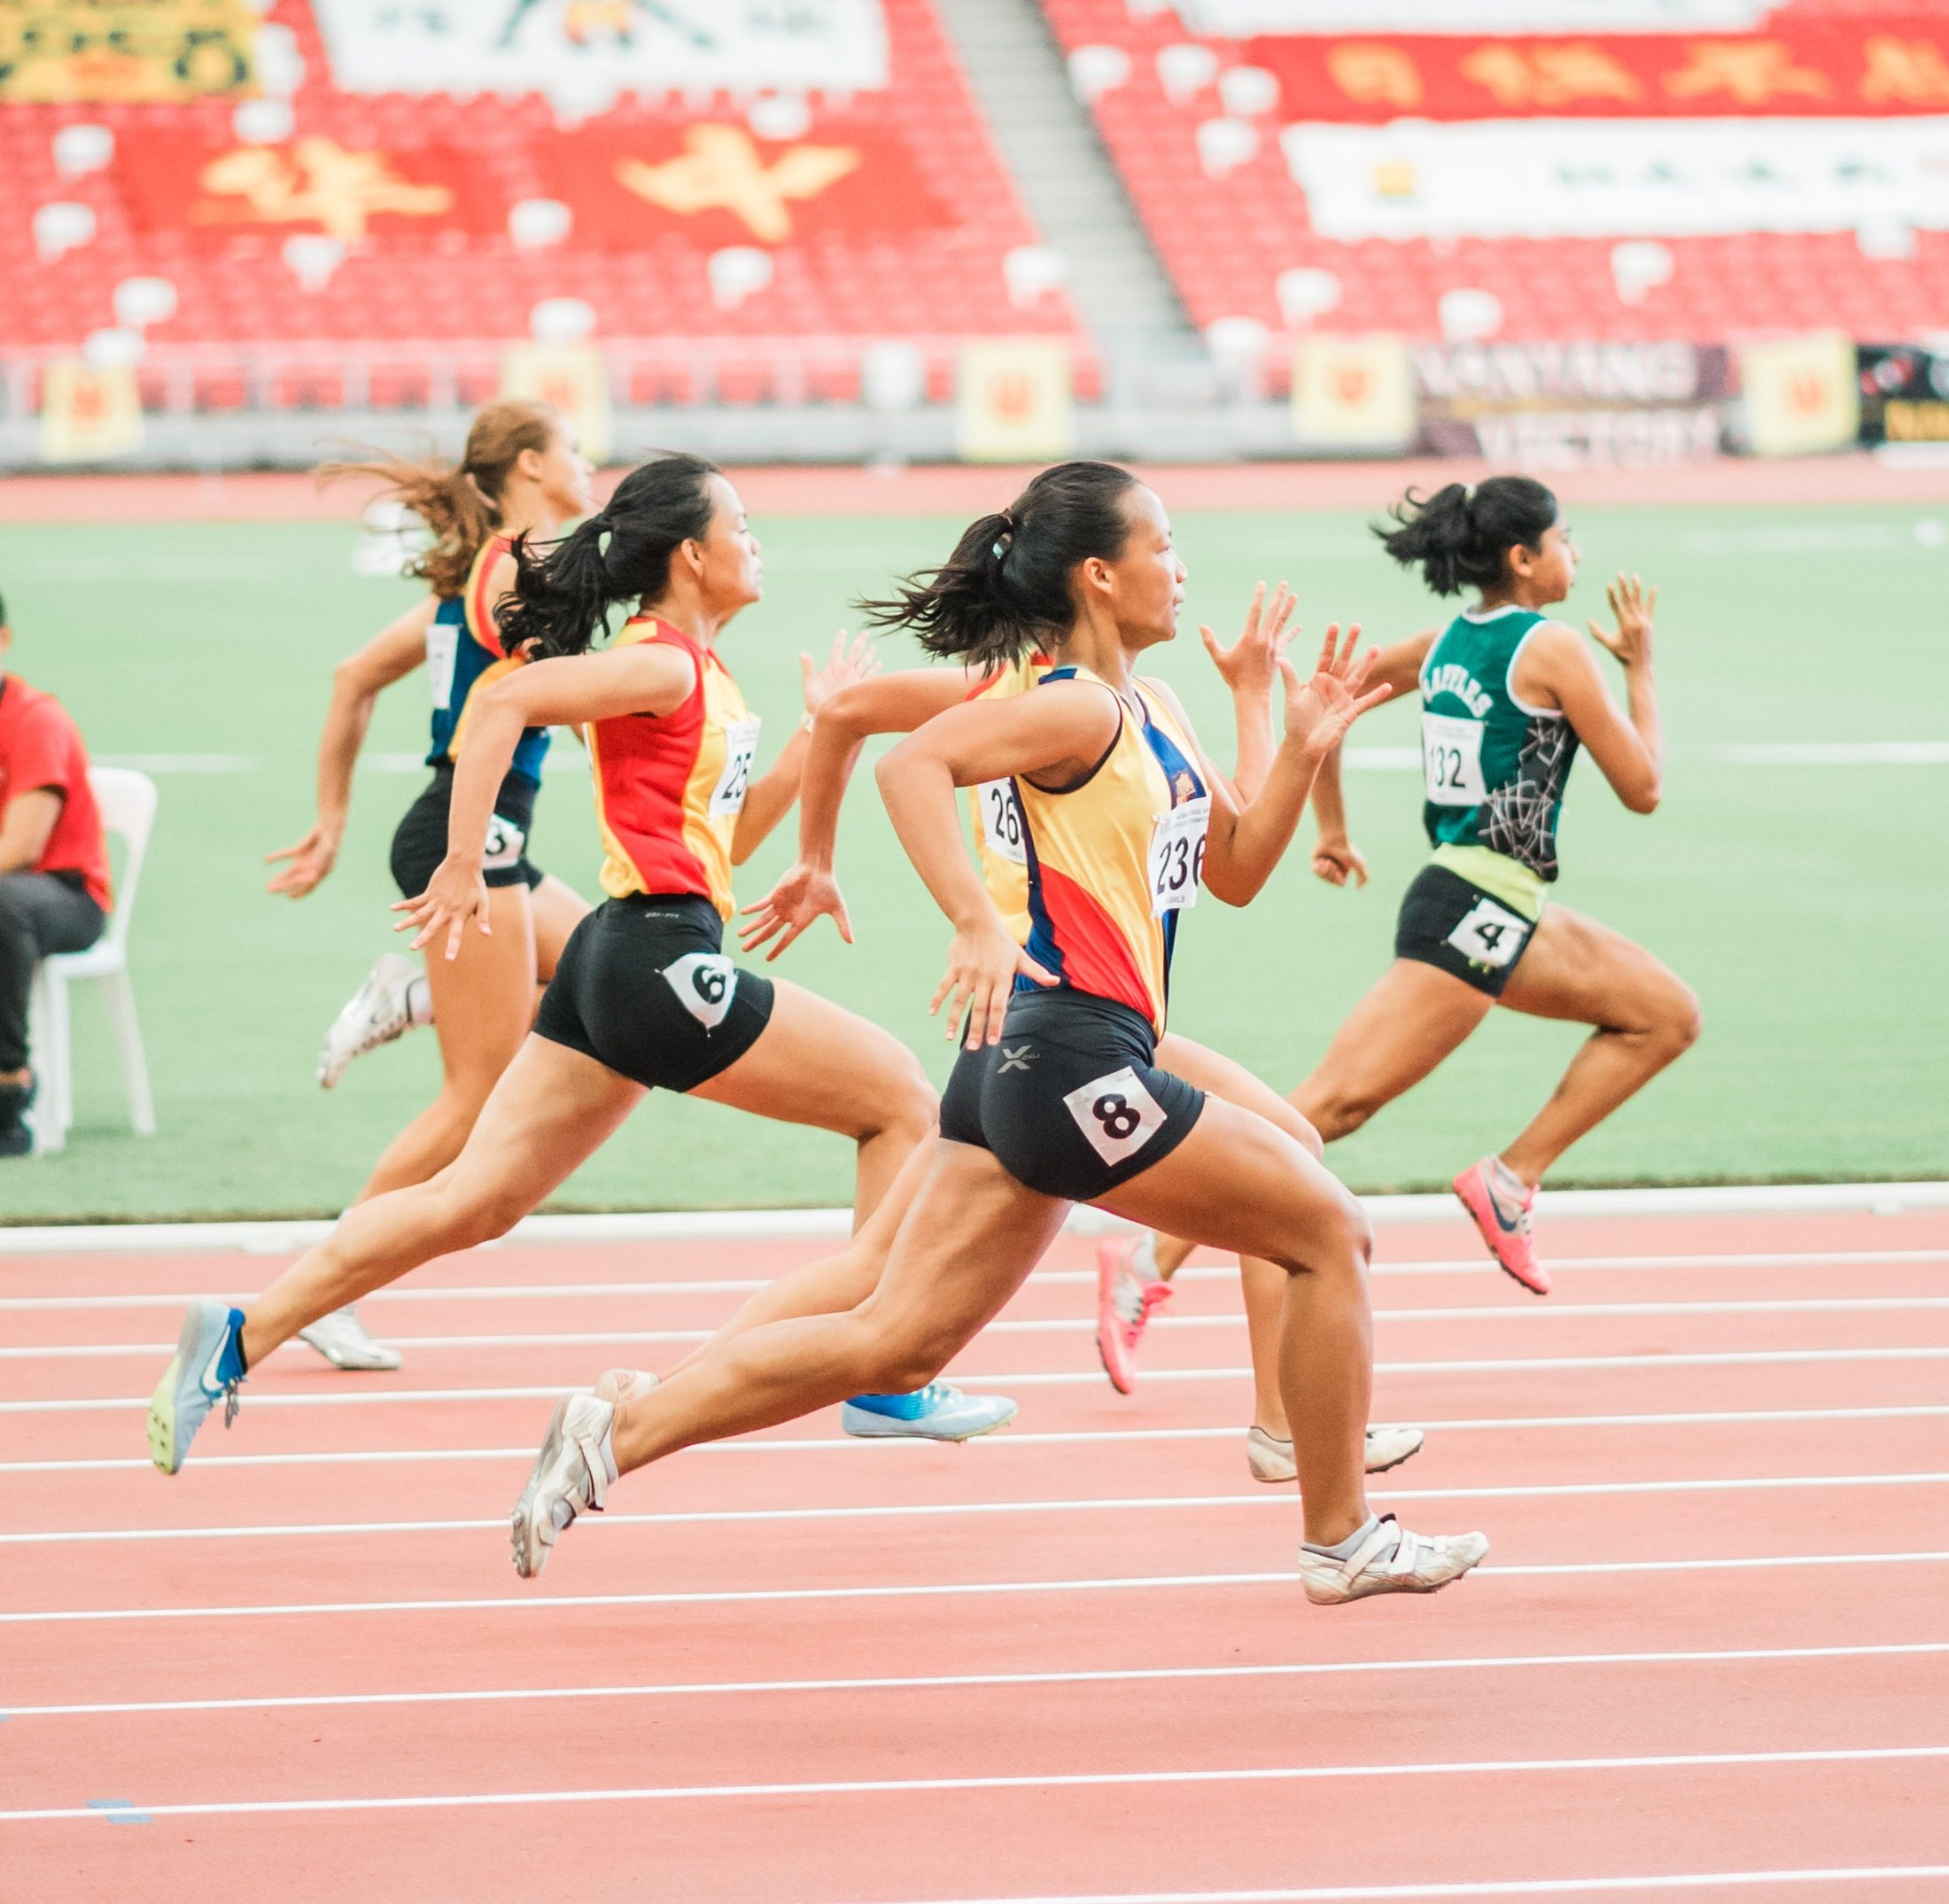 Image shows a photo of women in a short distance running race on a track.